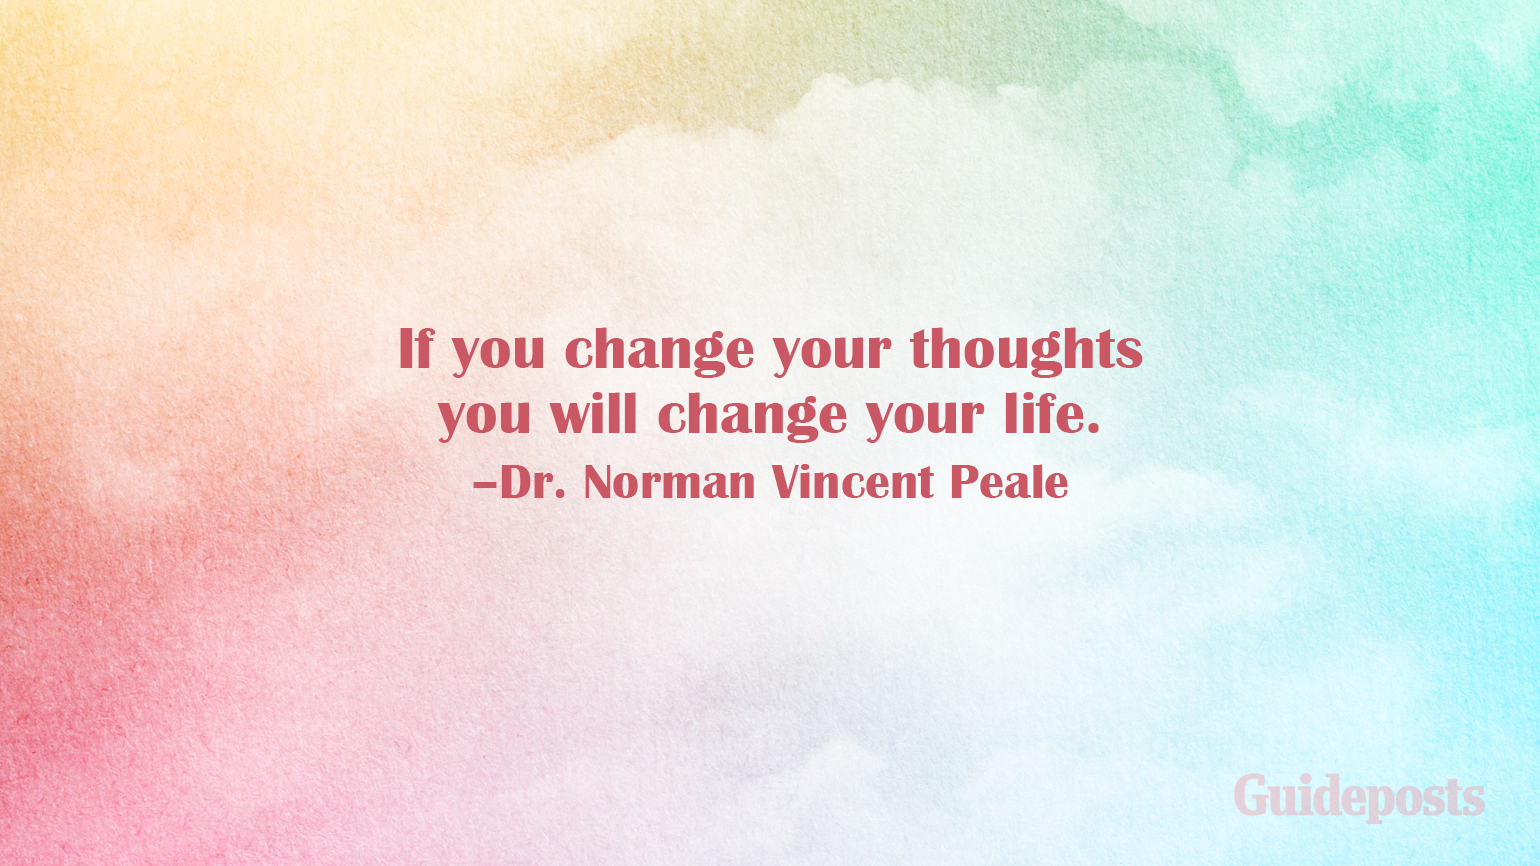 10 Quotes to Live Your Best Life from Norman Vincent Peale